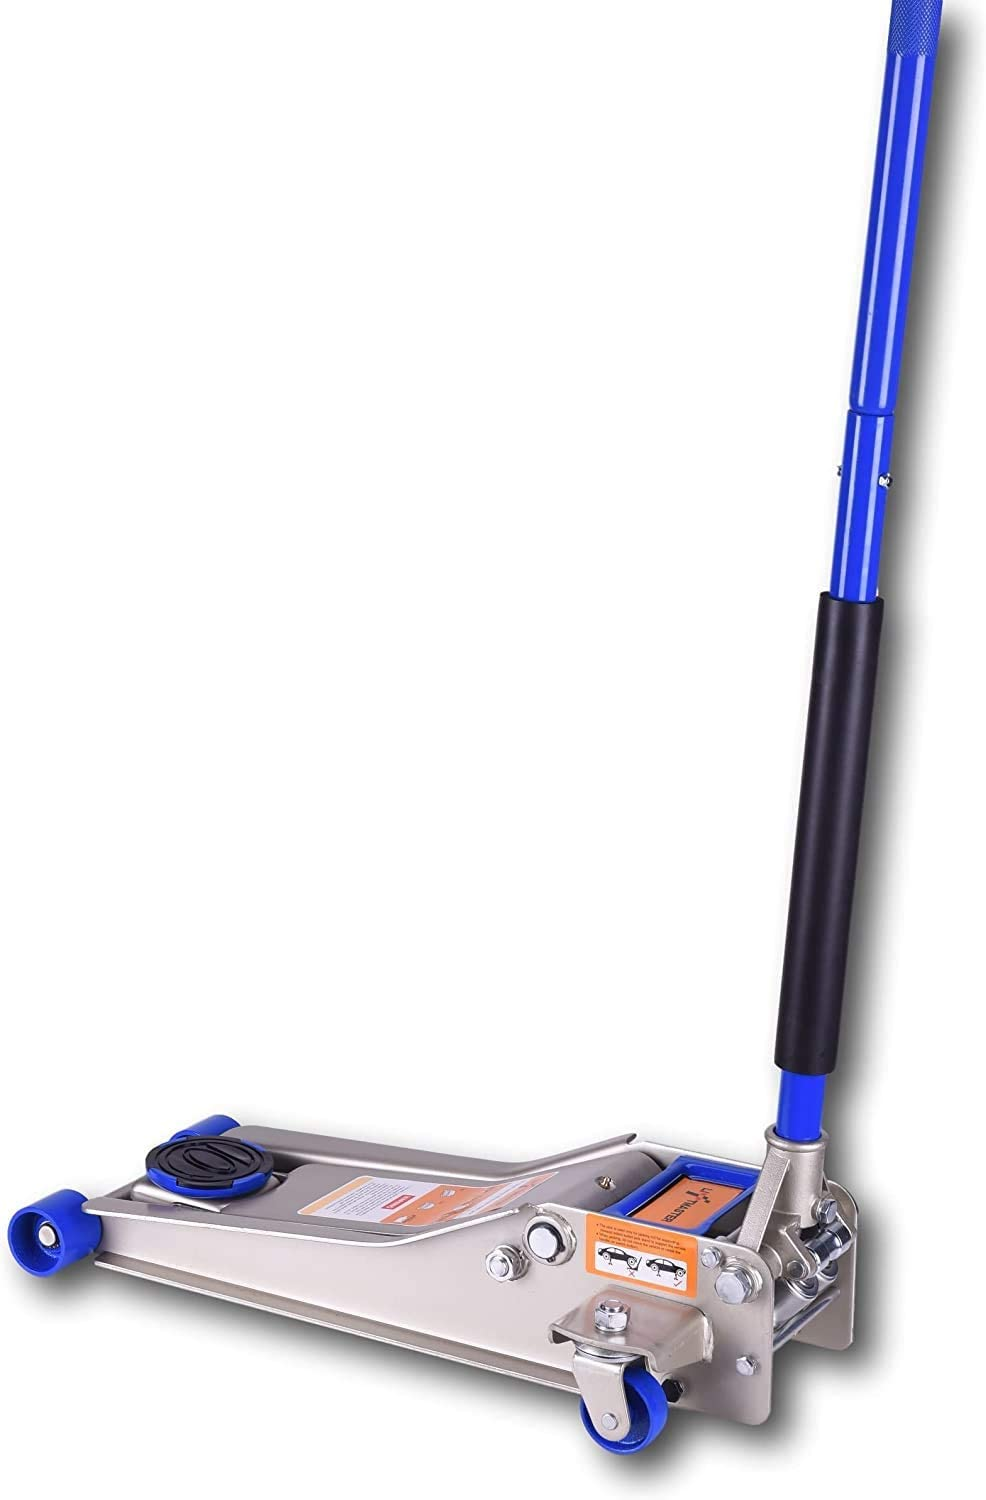 liftmaster 3 Ton Heavy Duty Ultra Low Profile Floor Jack with Quicklift Ver 2